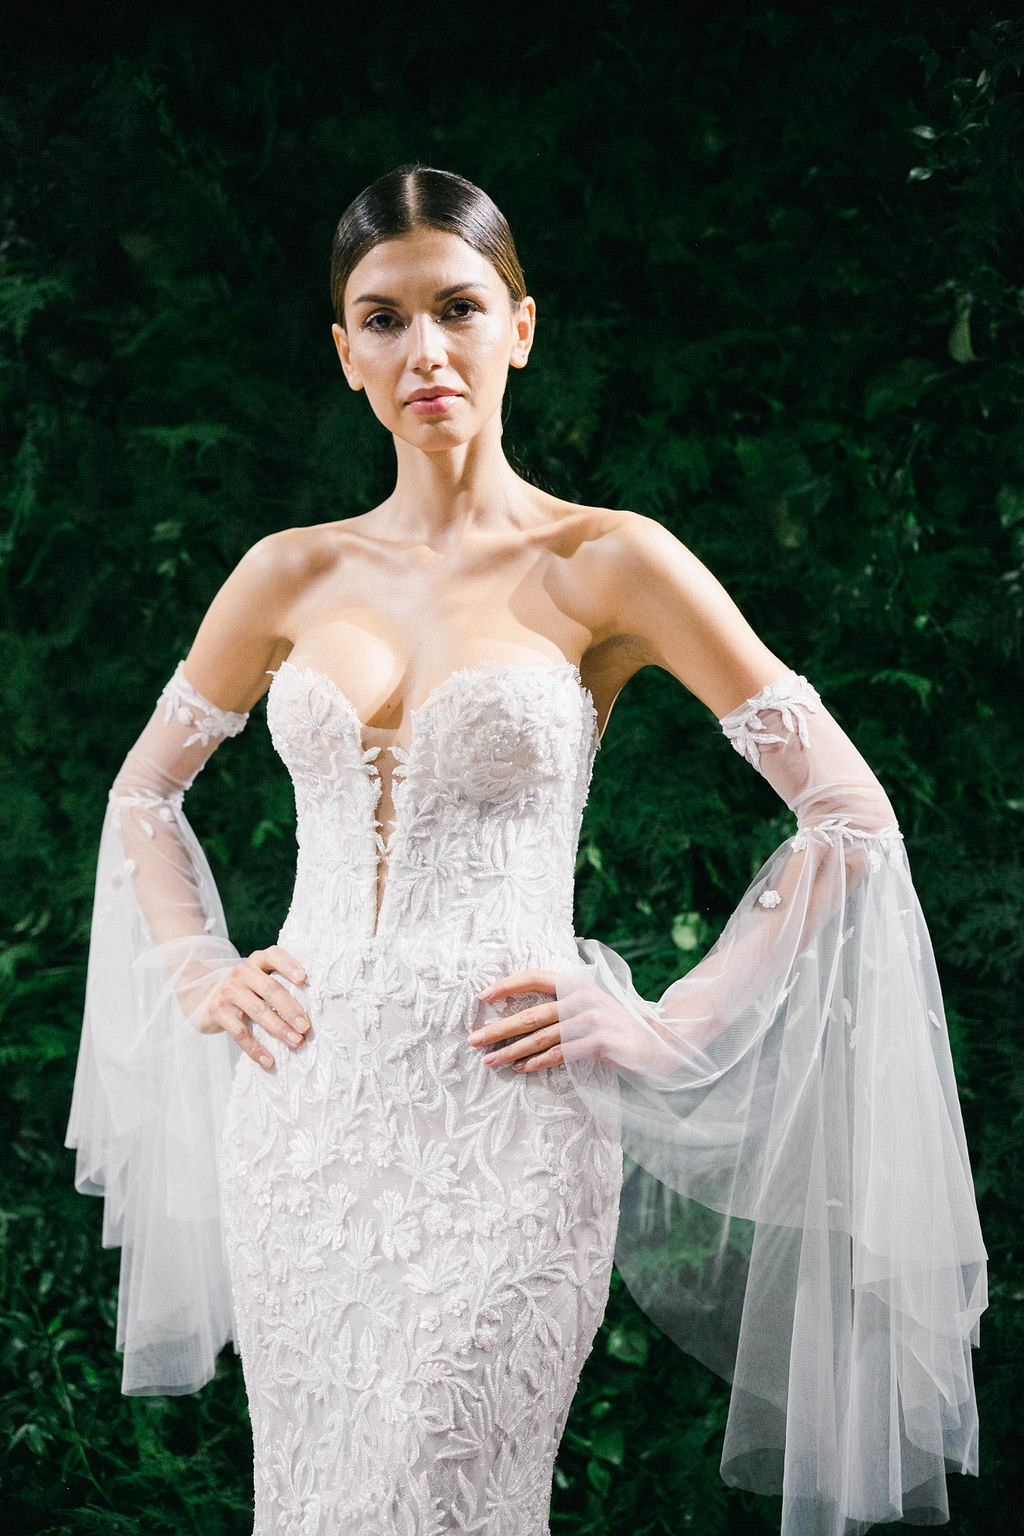 15 Best Lace Wedding Dresses from NYBFW 2018